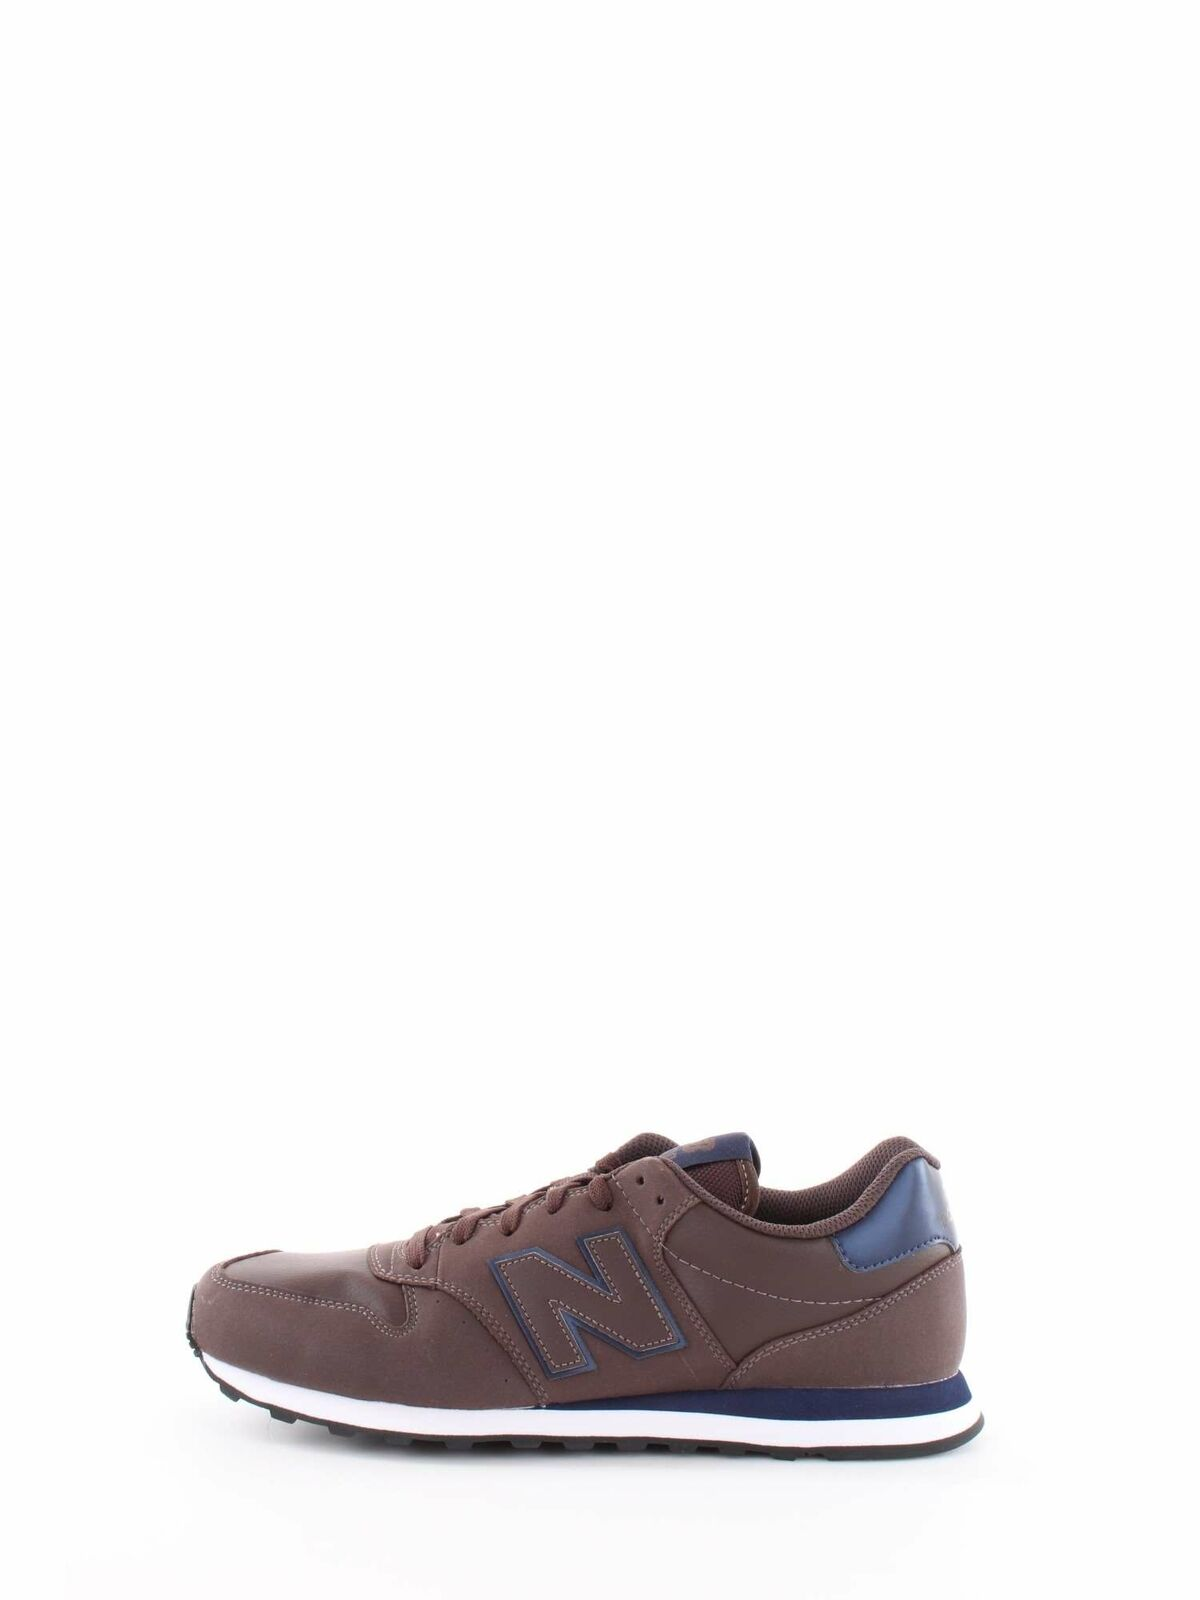 chaussures NEW BALANCE GM500DBN LIFESTYLE MEN MICROFIBER SYNTHETIC DARK marron hommes